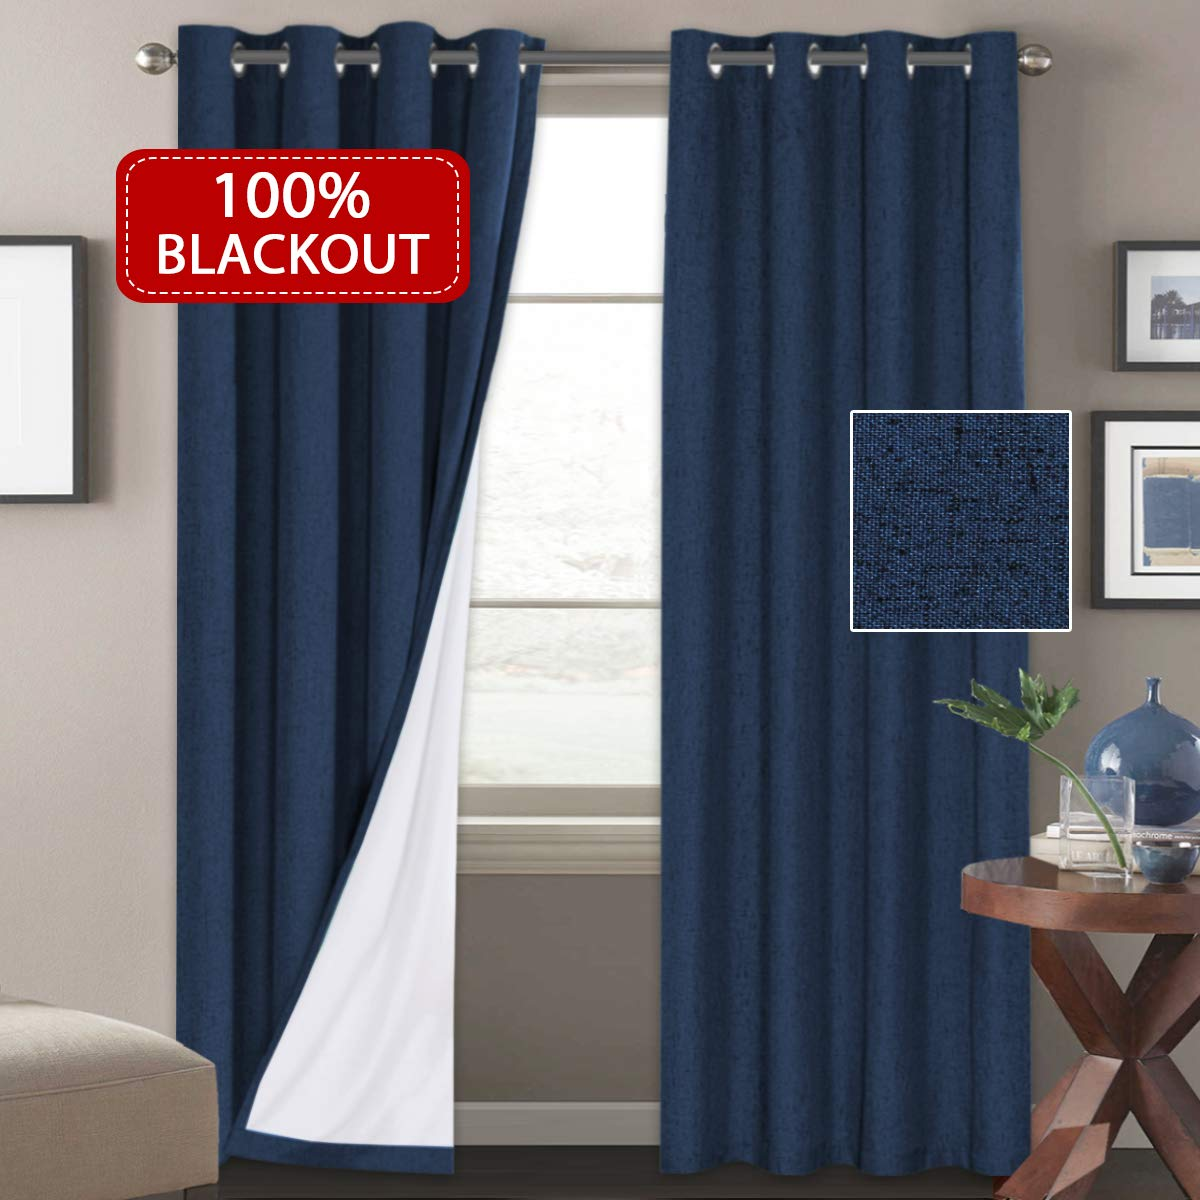 Top 8 Best Curtains For Noise Reduction - Buyer's Guide 4